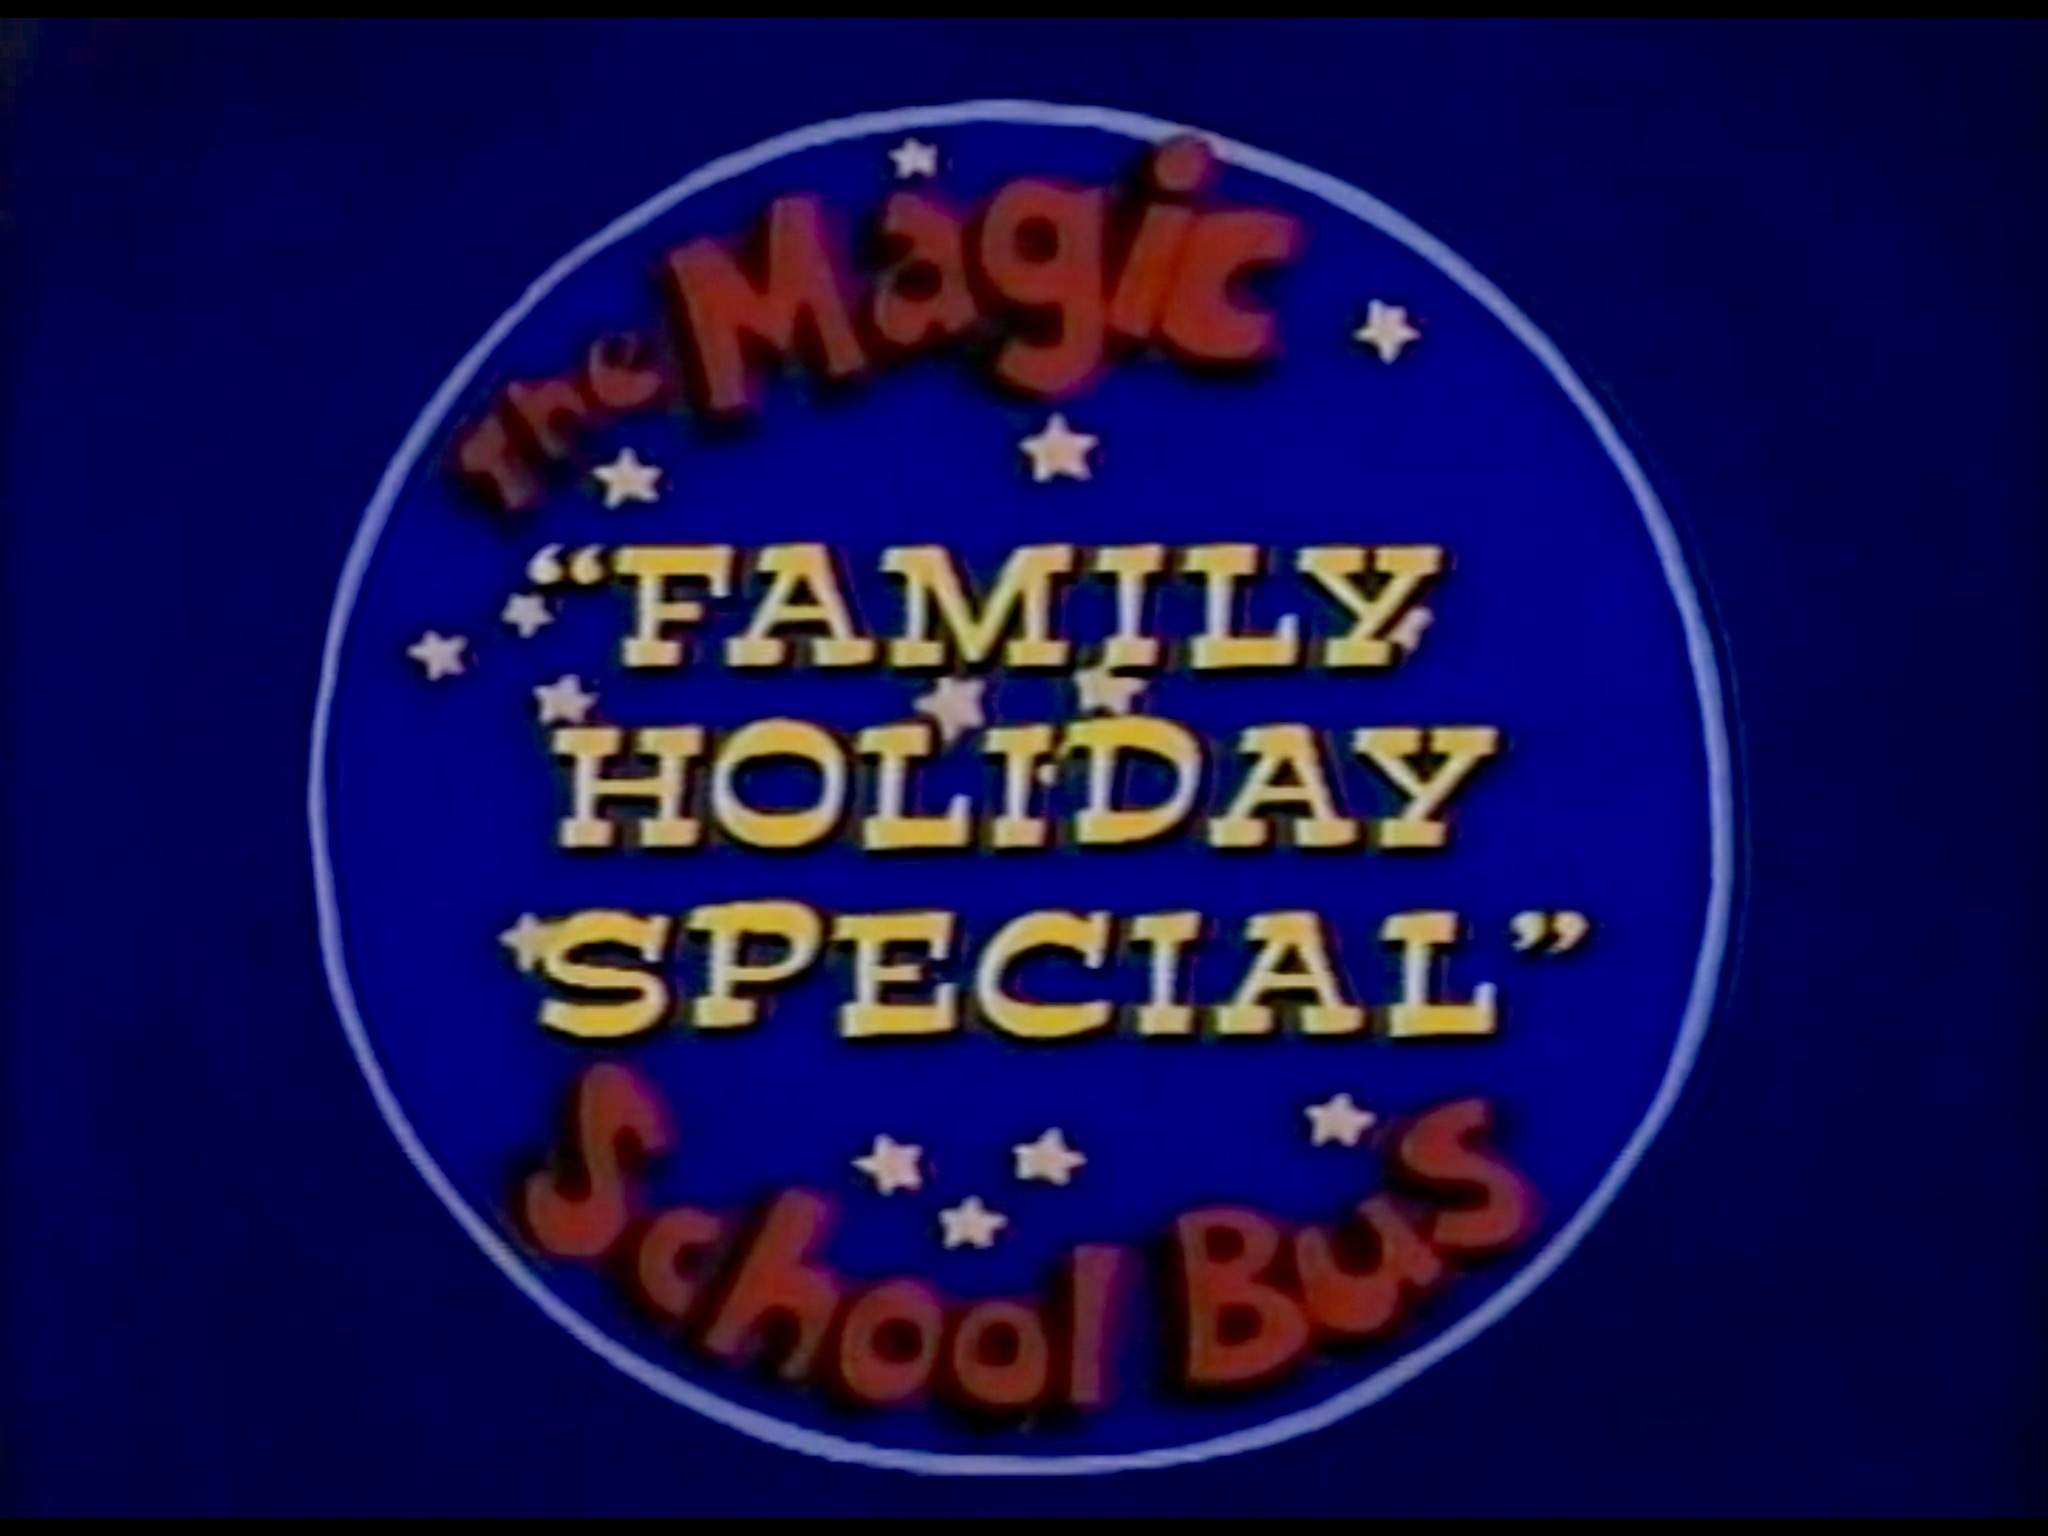 Magic school bus holiday special title.jpg